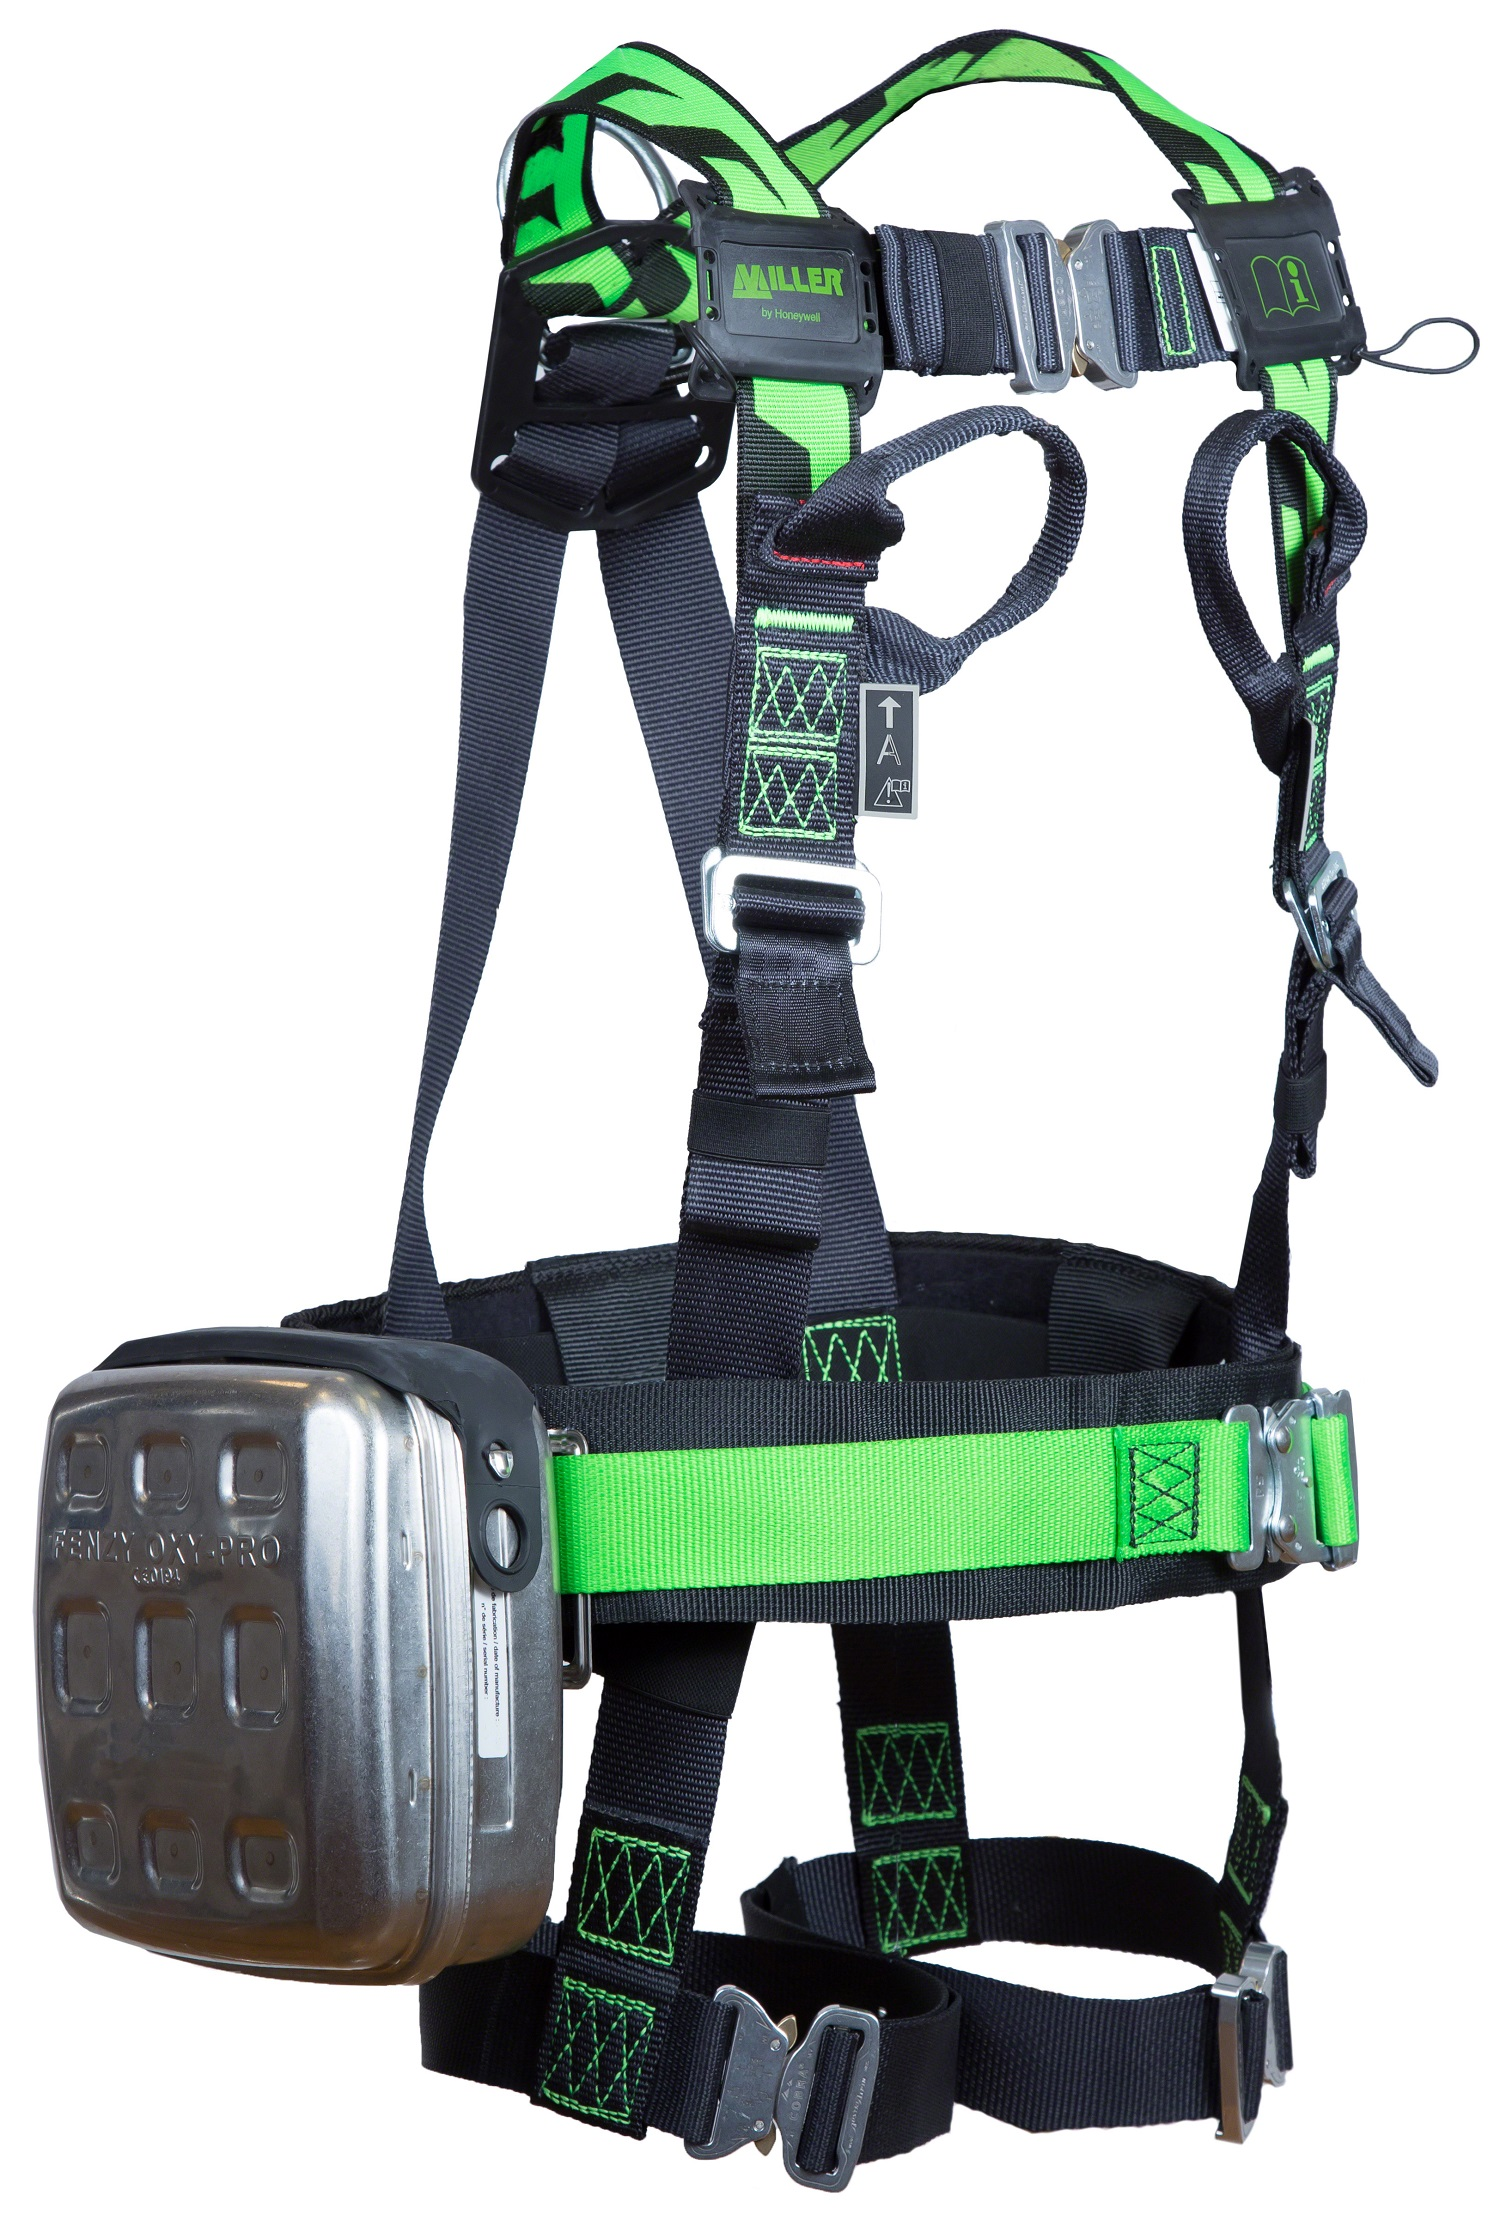 Honeywell confined space harness